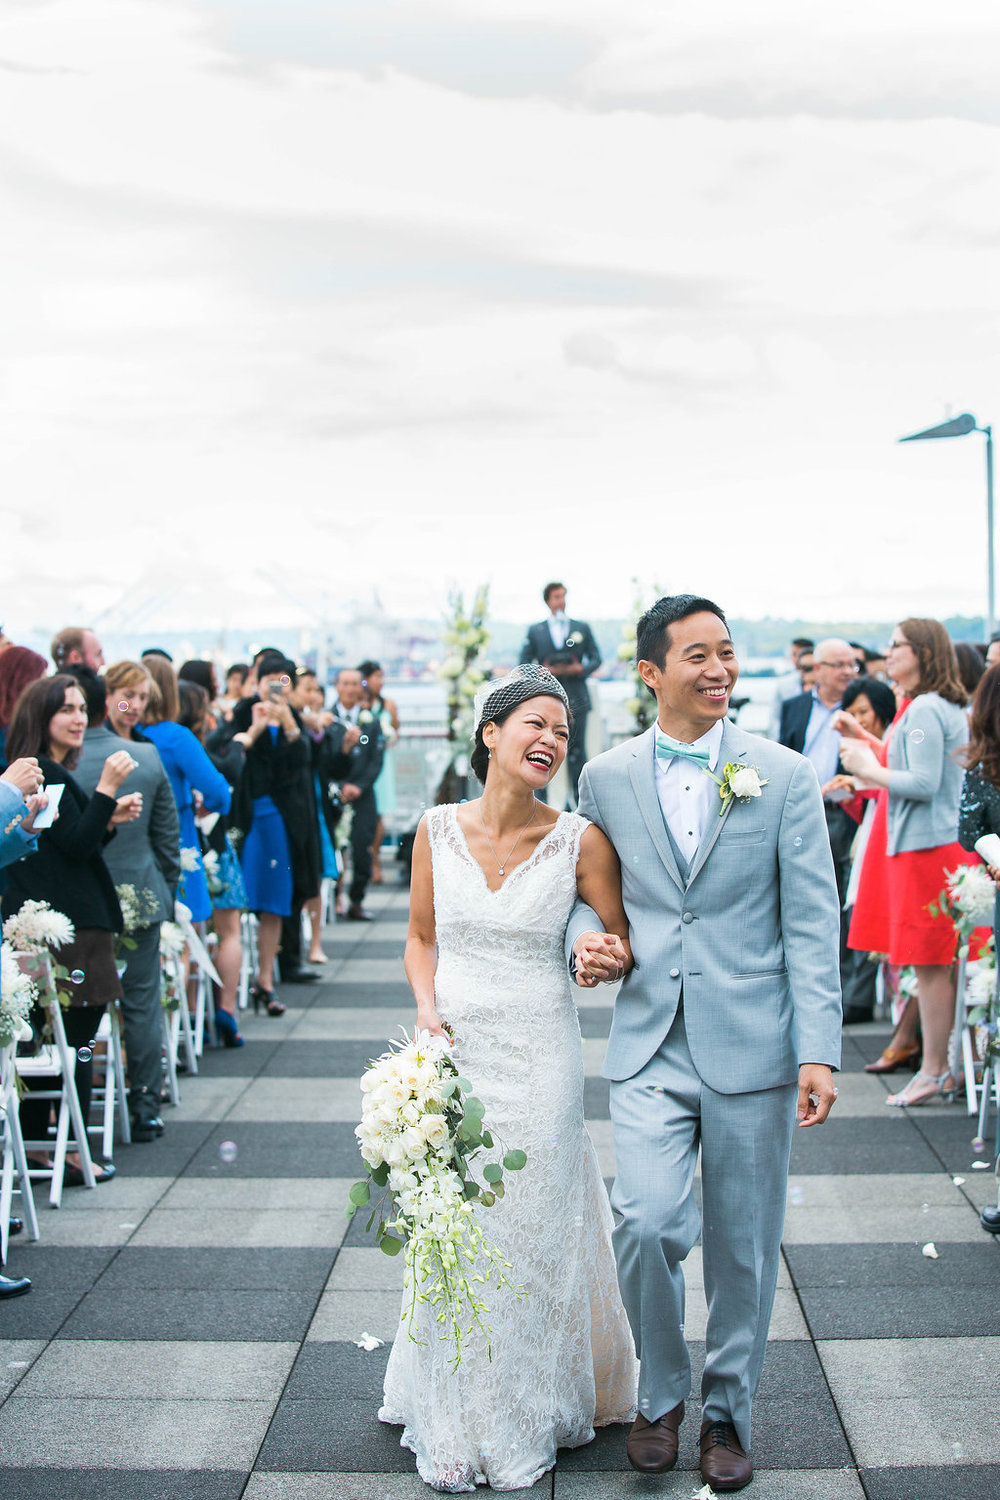 Bao_Uyen+Chris_Wedding_Seattle_Bell_Harbor_6182016_601.jpg